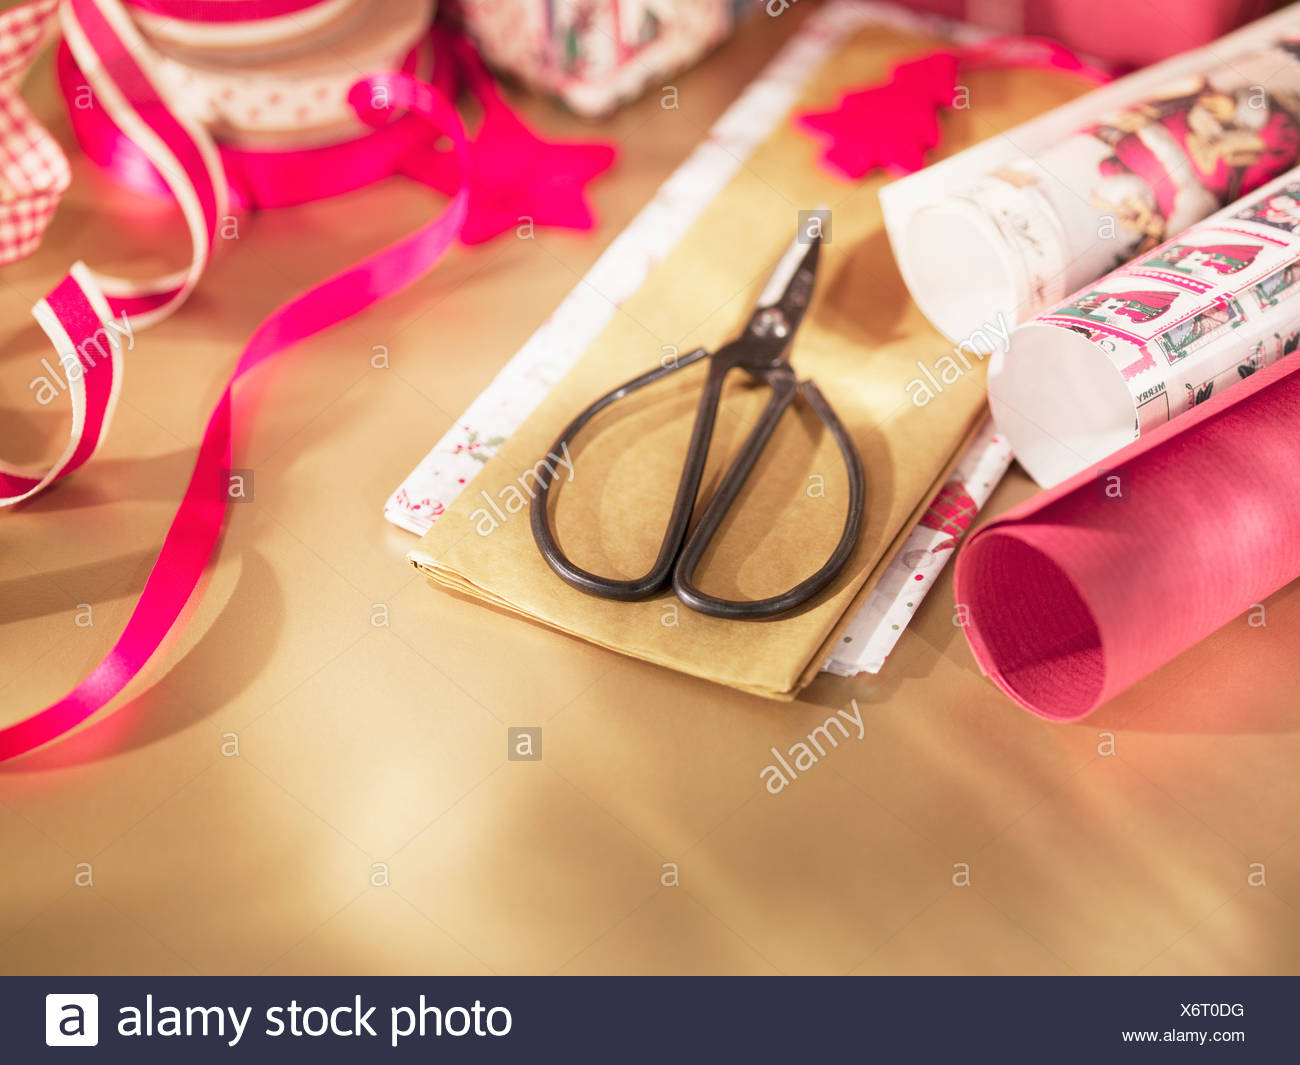 Christmas wrapping paper, ribbon and scissors - Stock Image